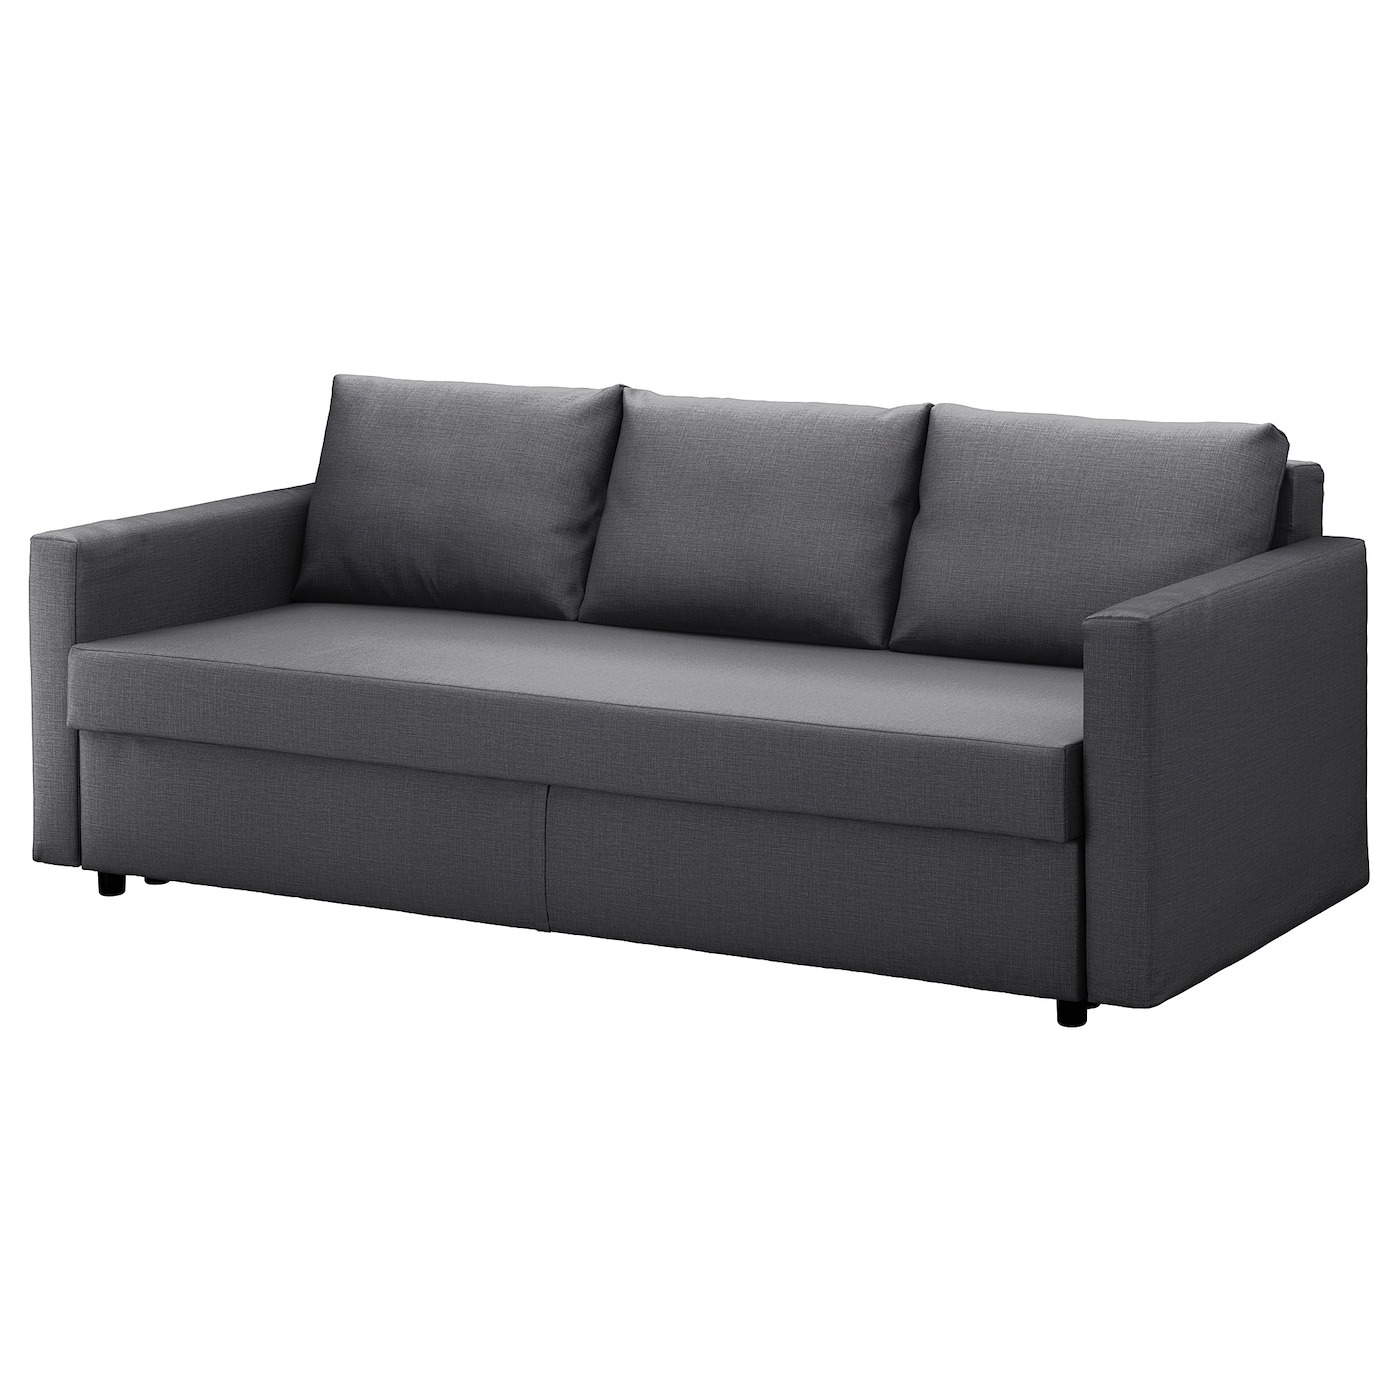 Corner Sofa Beds Futons Chair Beds Ikea